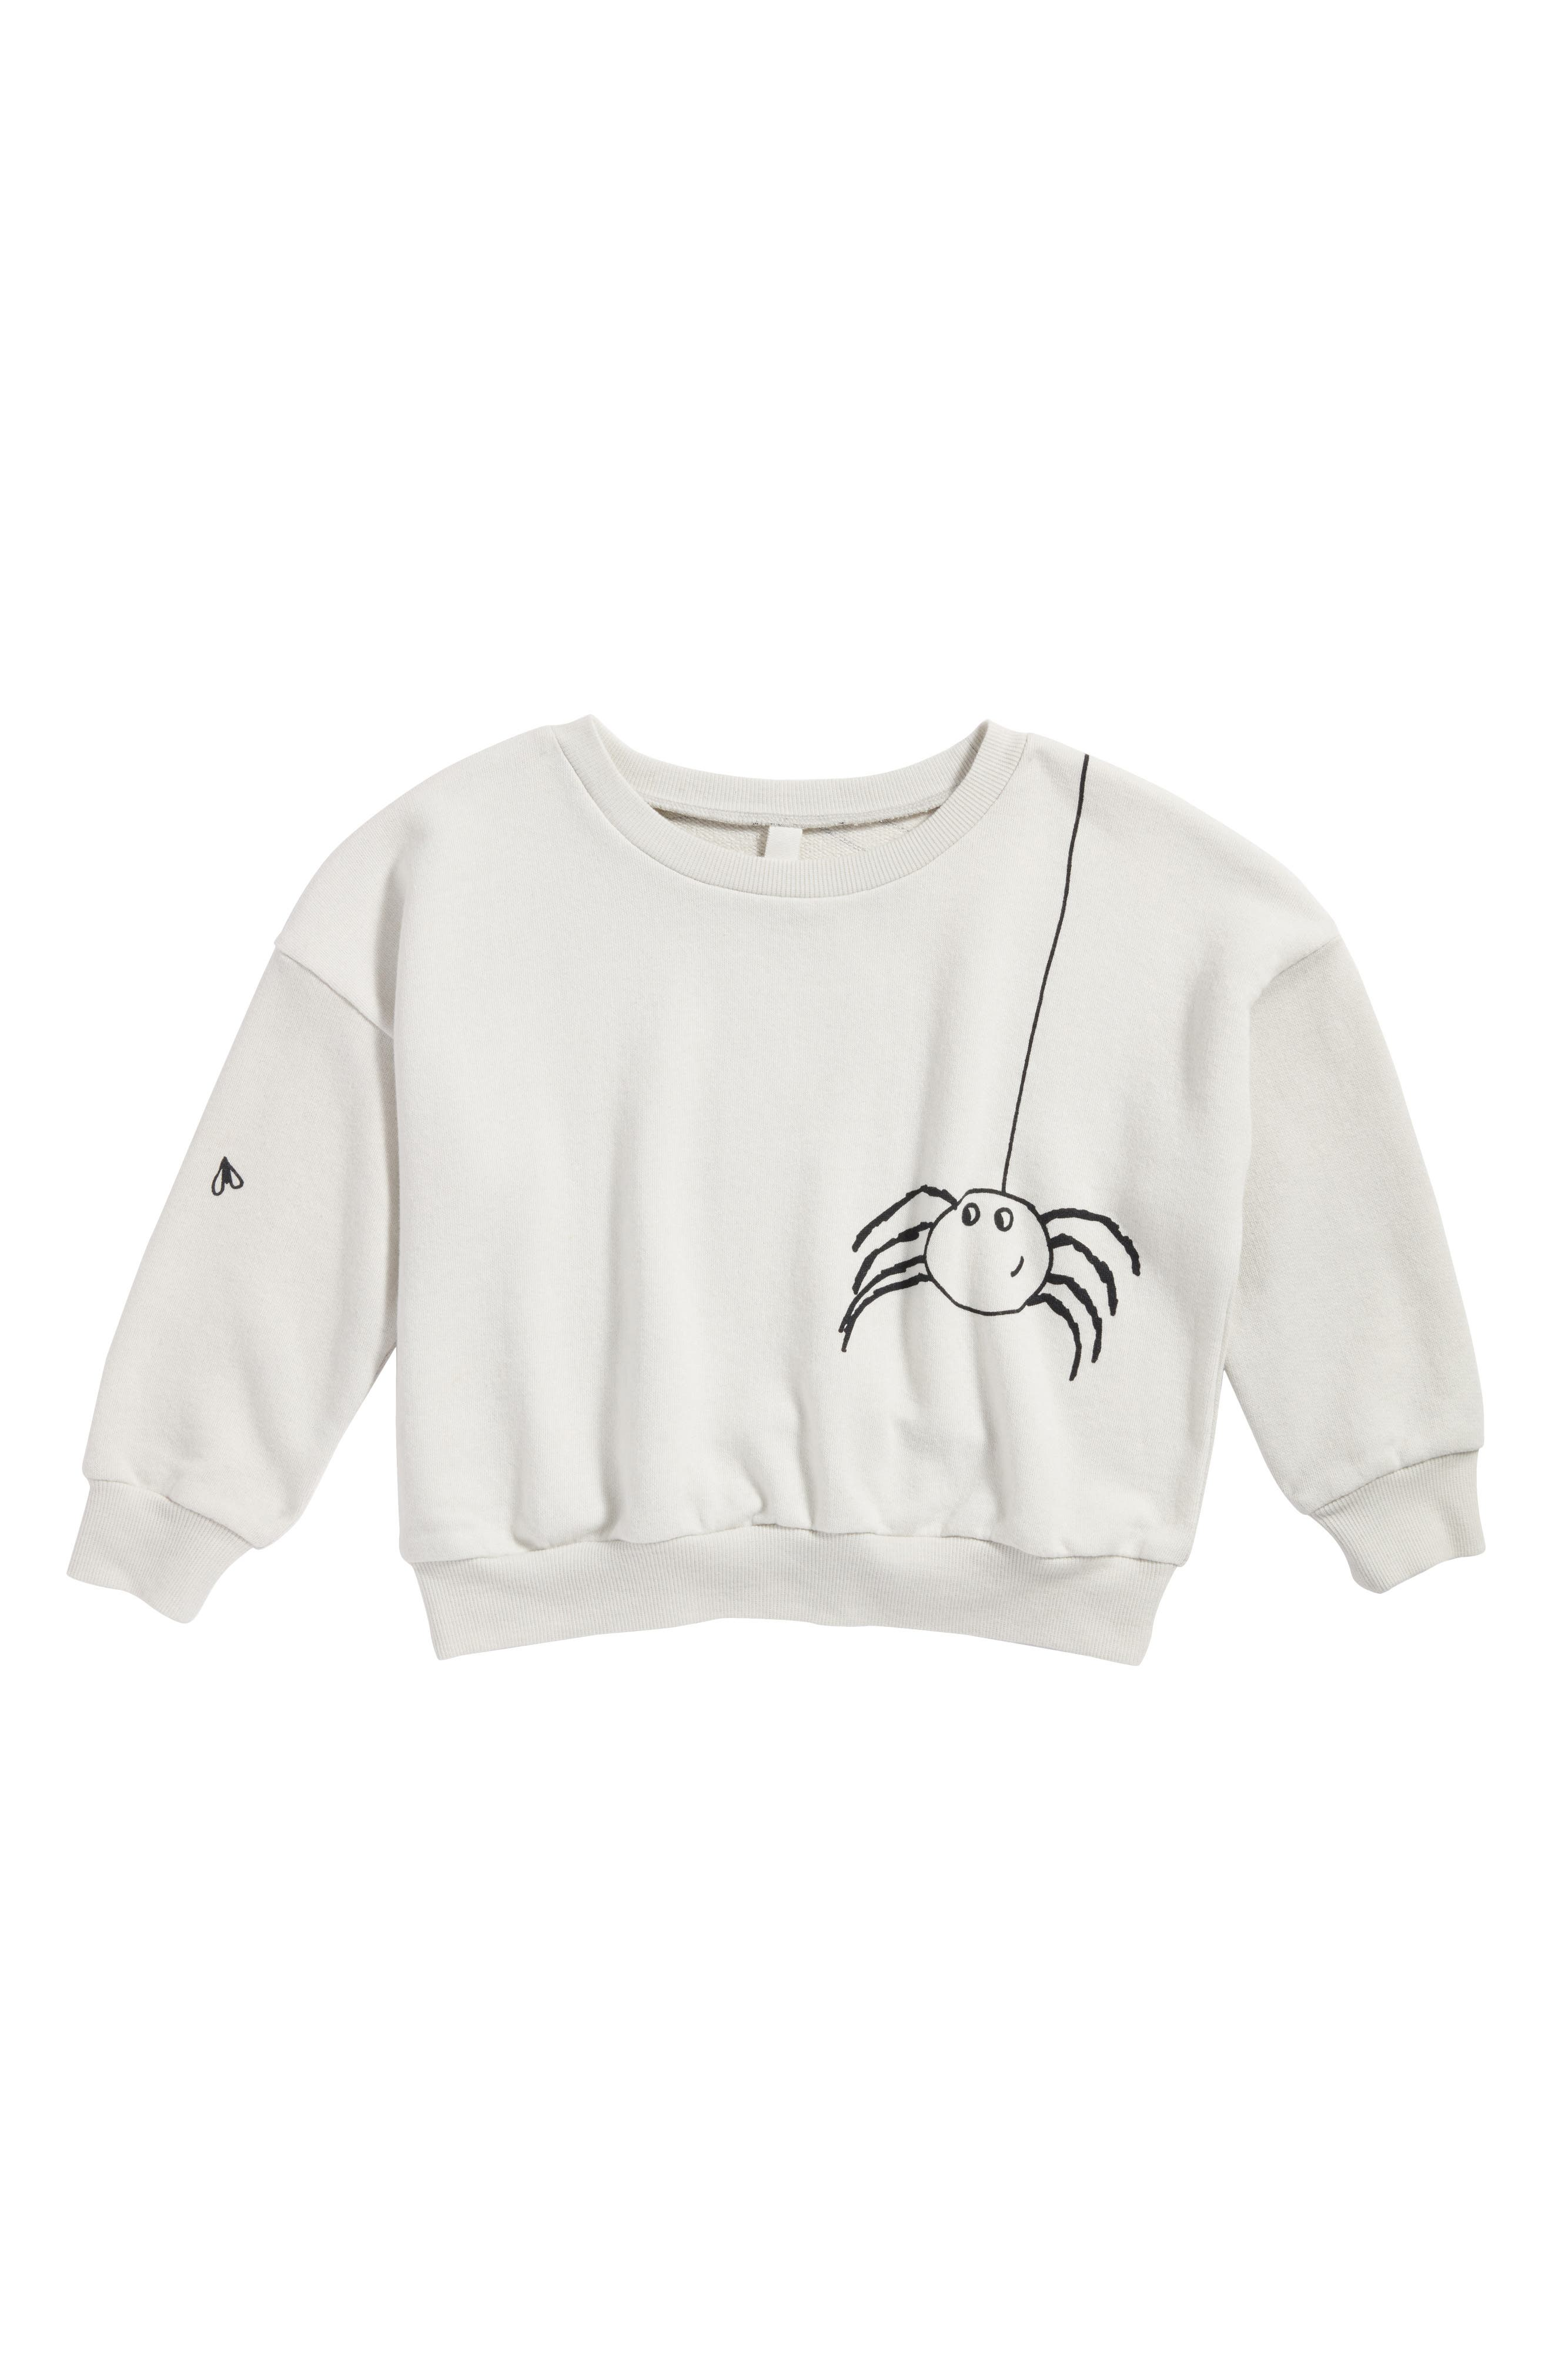 Graphic Sweatshirt,                             Main thumbnail 1, color,